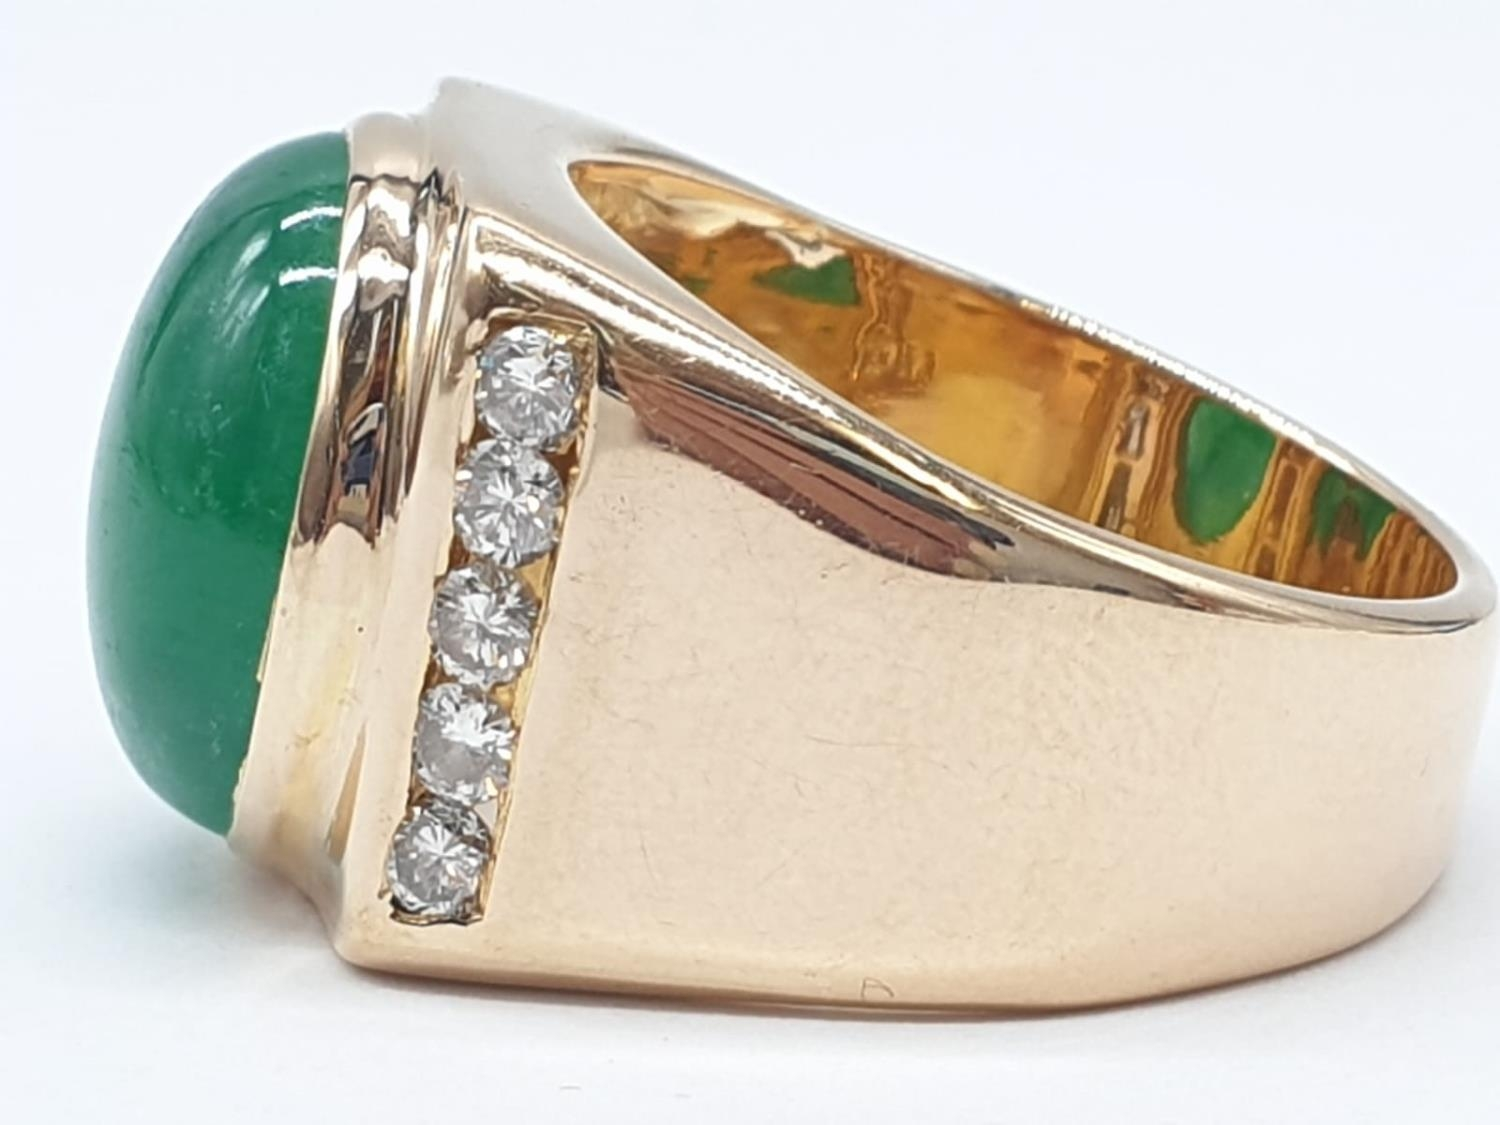 18ct Gold ring with natural jade stone and diamond shoulders. 16.2g total weight and size R. - Image 5 of 8